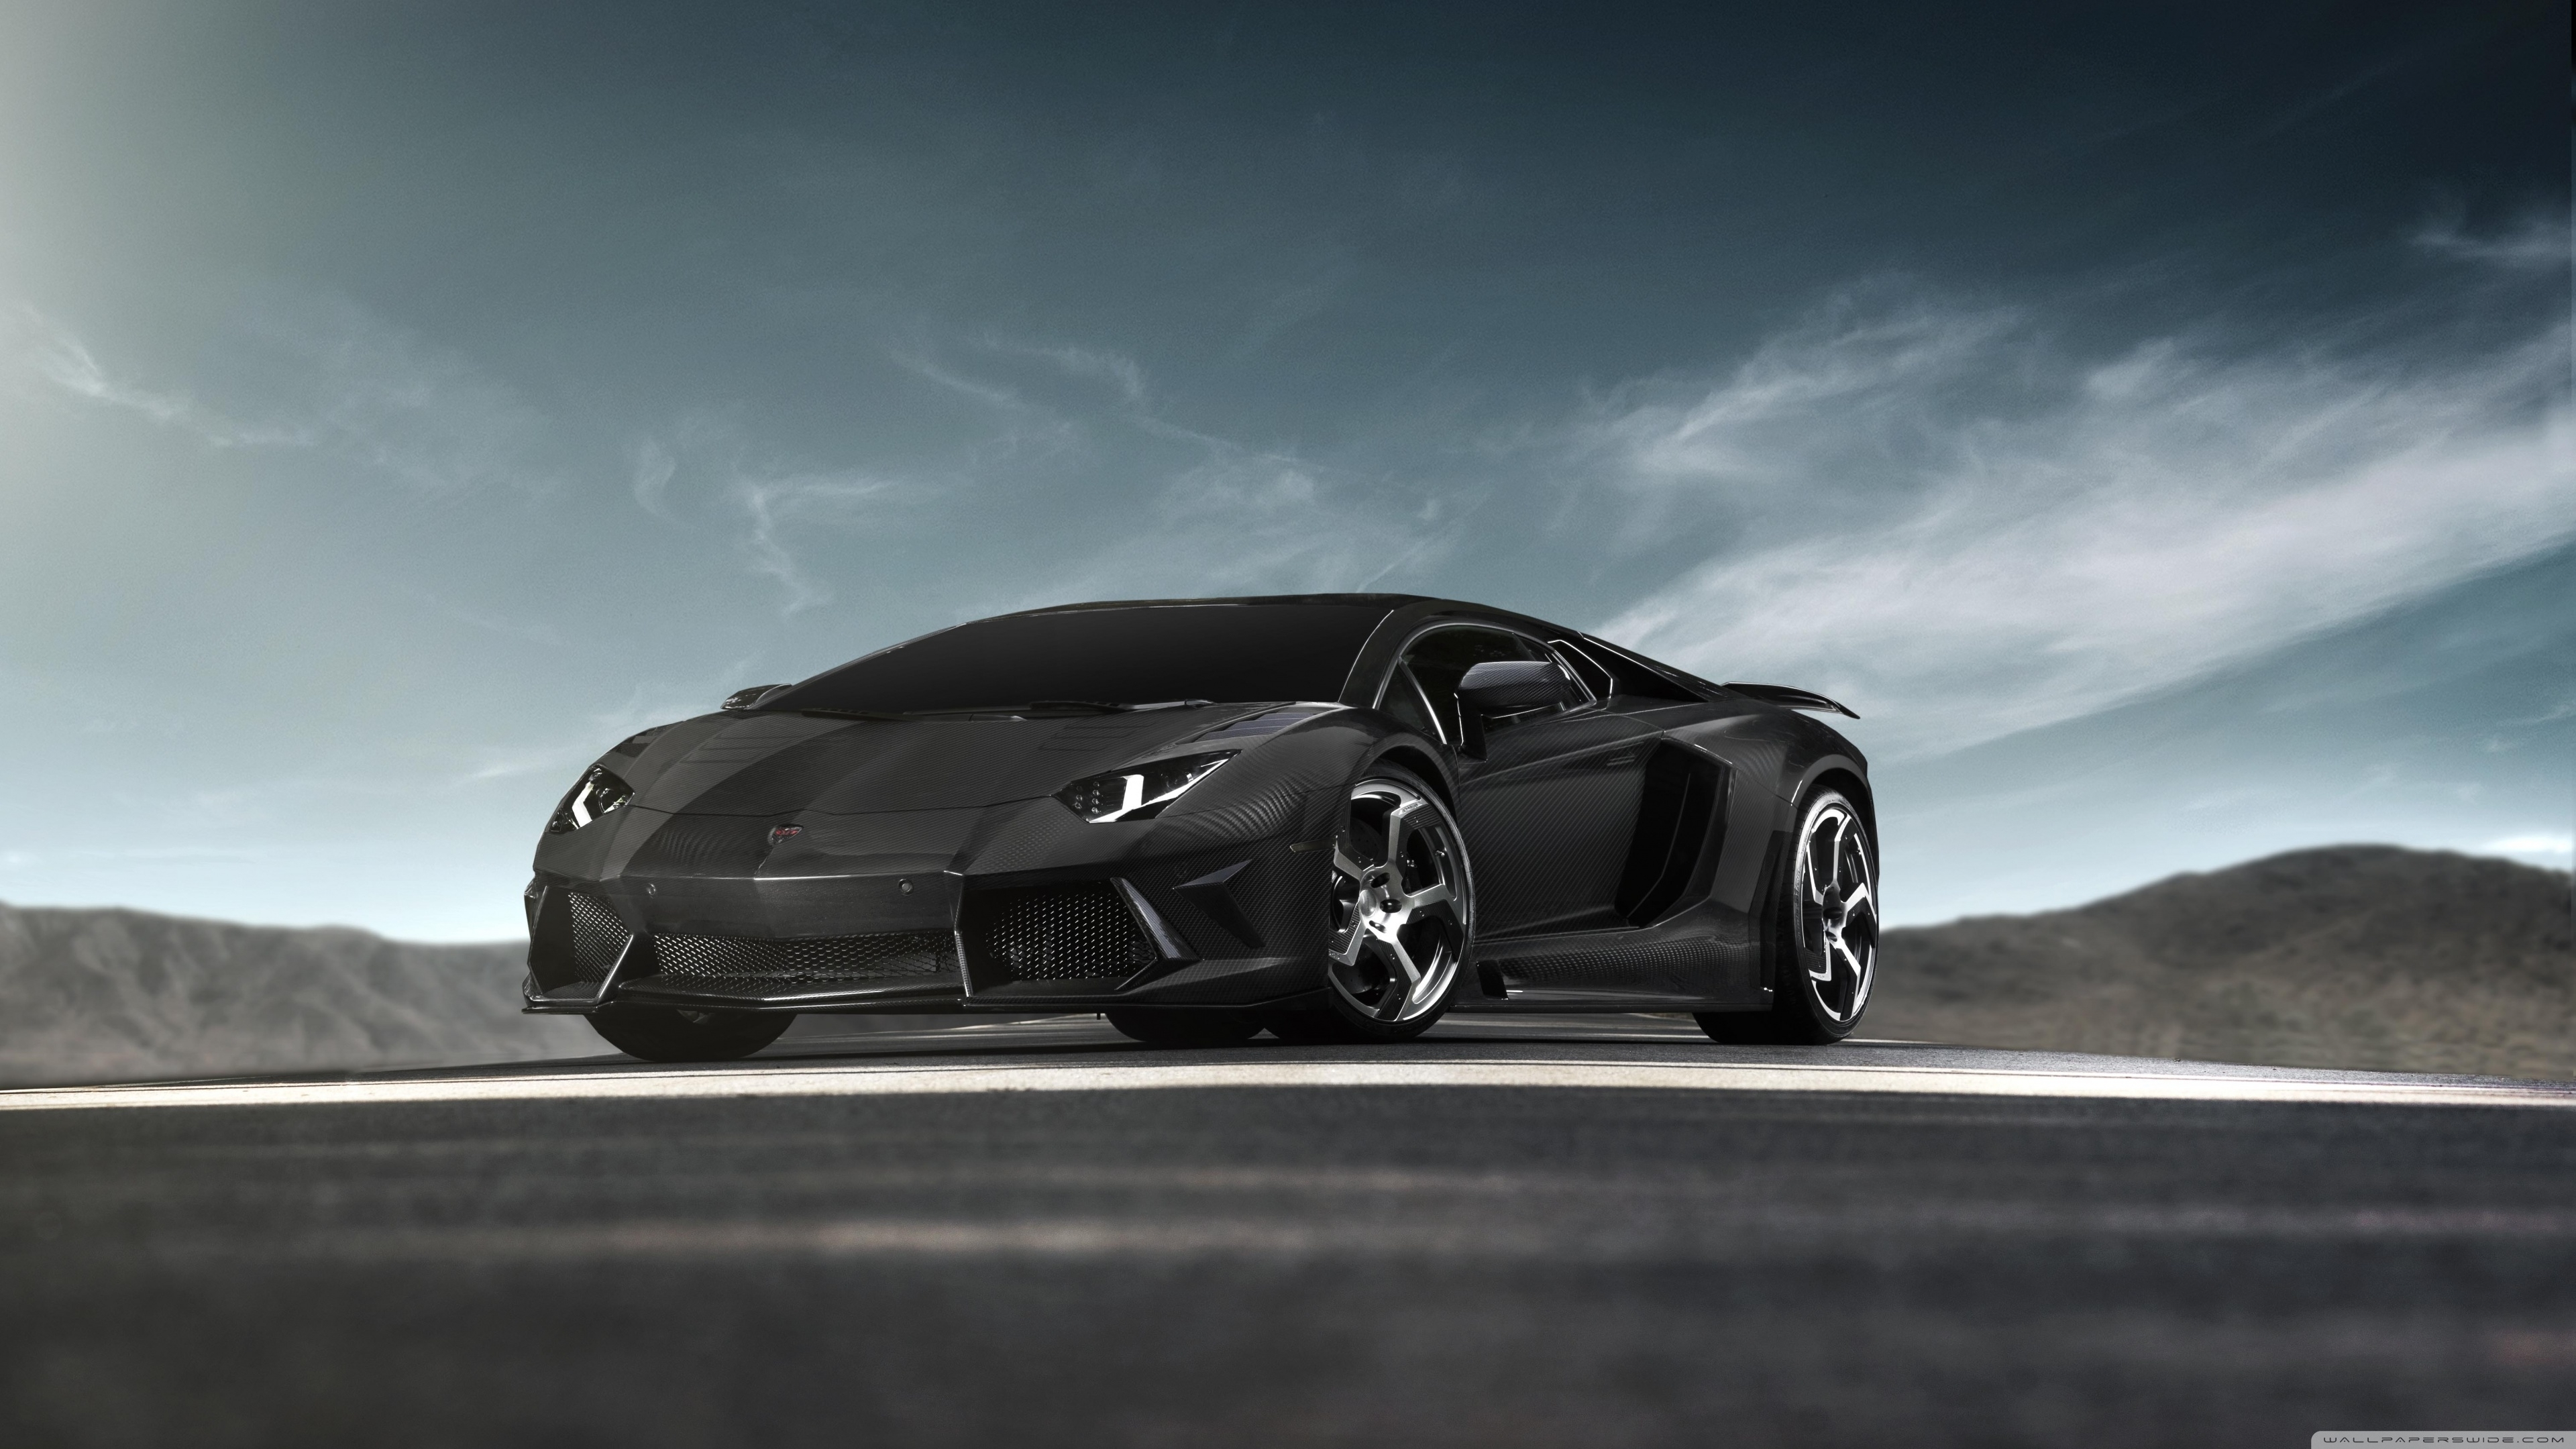 black lamborghini aventador supercar ❤ 4k hd desktop wallpaper for